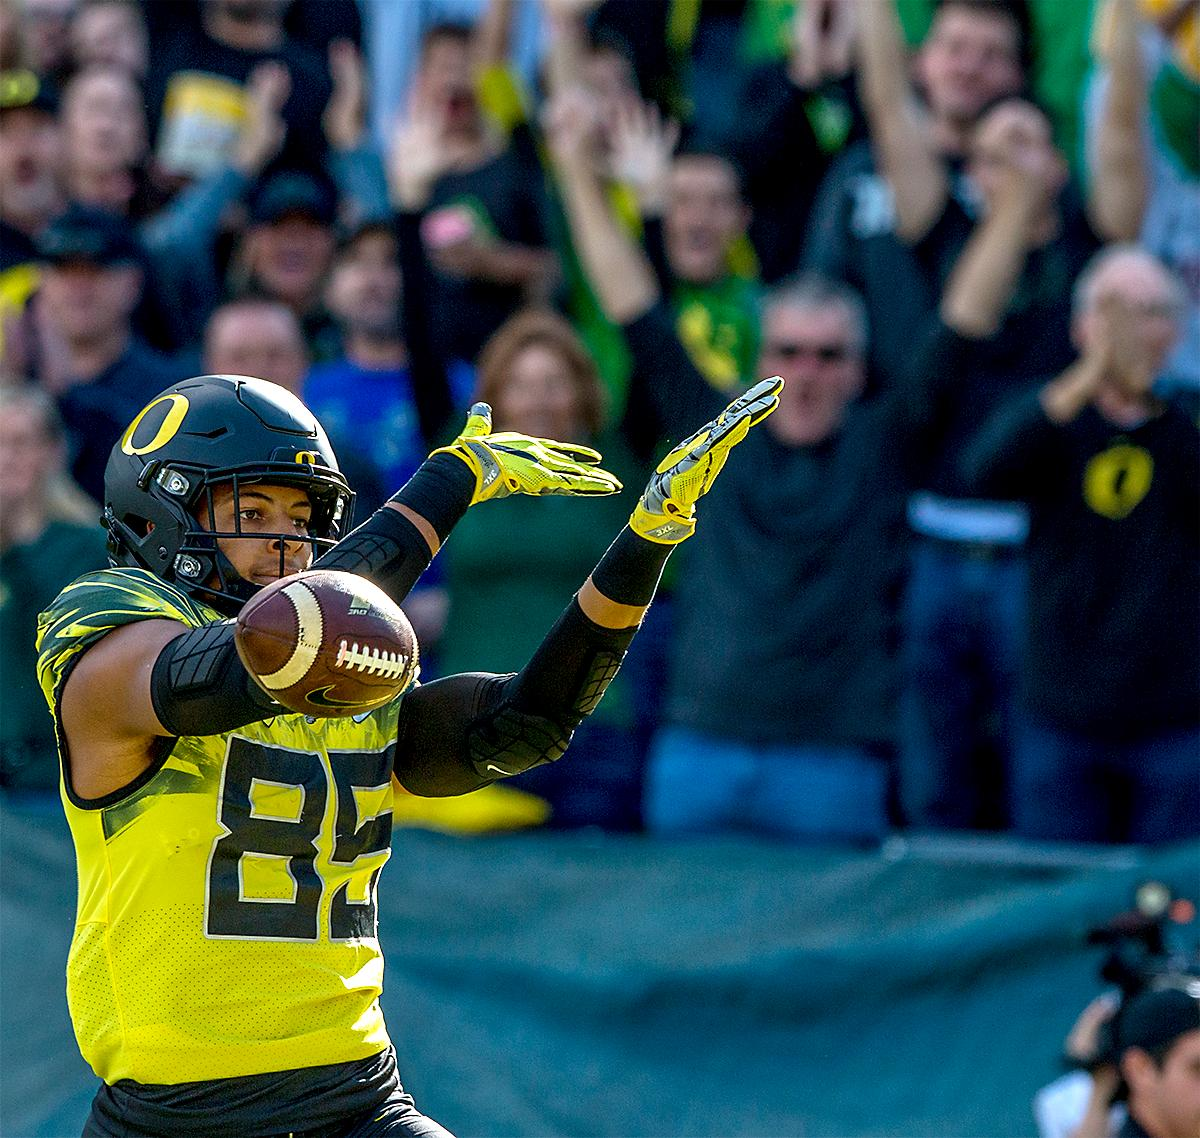 The Duck's Pharaoh Brown (#85) lets the ball go as he celebrates his touchdown. The Oregon Ducks broke their losing streak by defeating the ASU Sun Devils on Saturday 54-35. Photo by August Frank, Oregon News Lab